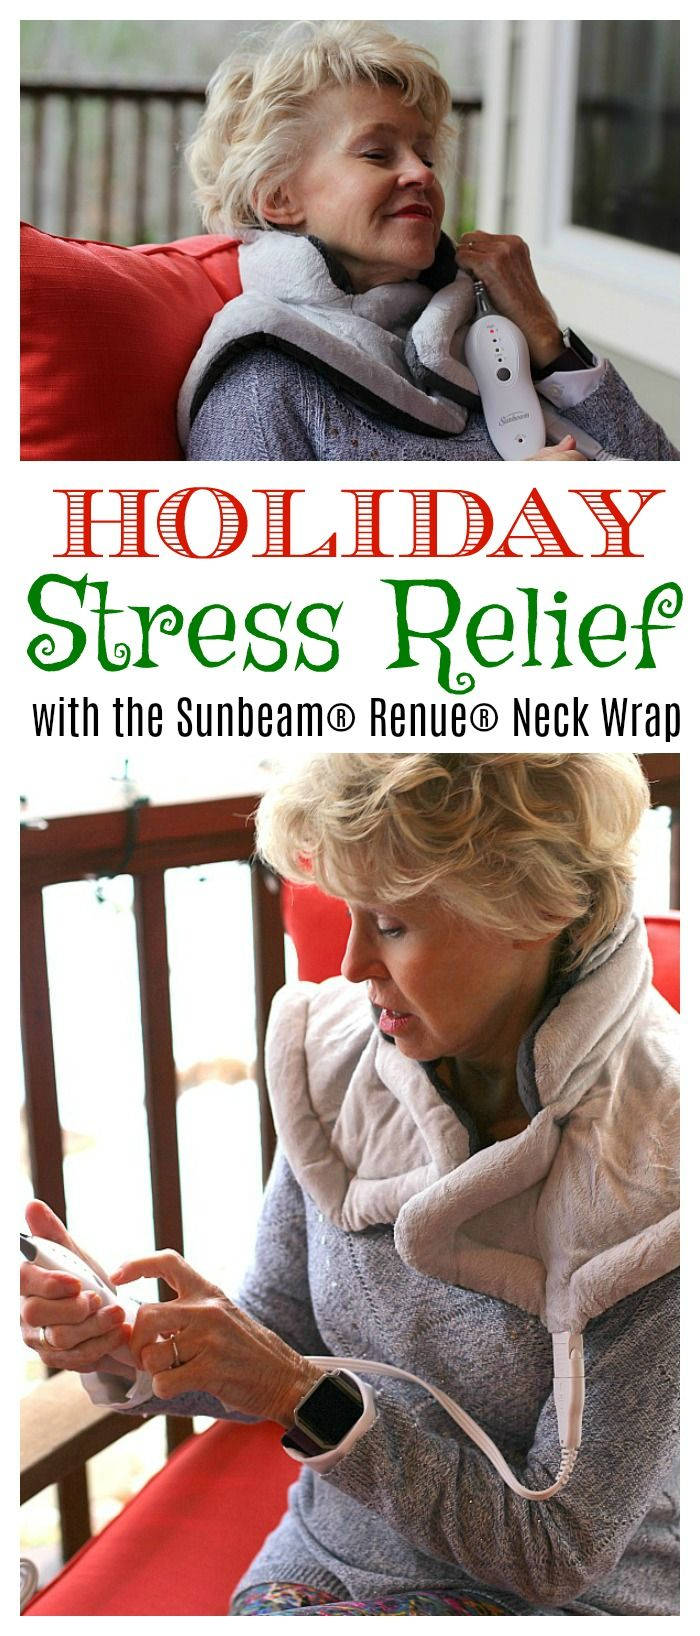 : #ad The holidays can be stressful but finding the perfect way to relieve those sore neck and shoulder muscles with heat doesn't have to be! Find out why the #Sunbeam Renue Neck Wrap is the perfect holiday gift for each and every person on your list! #TeamSunbeam